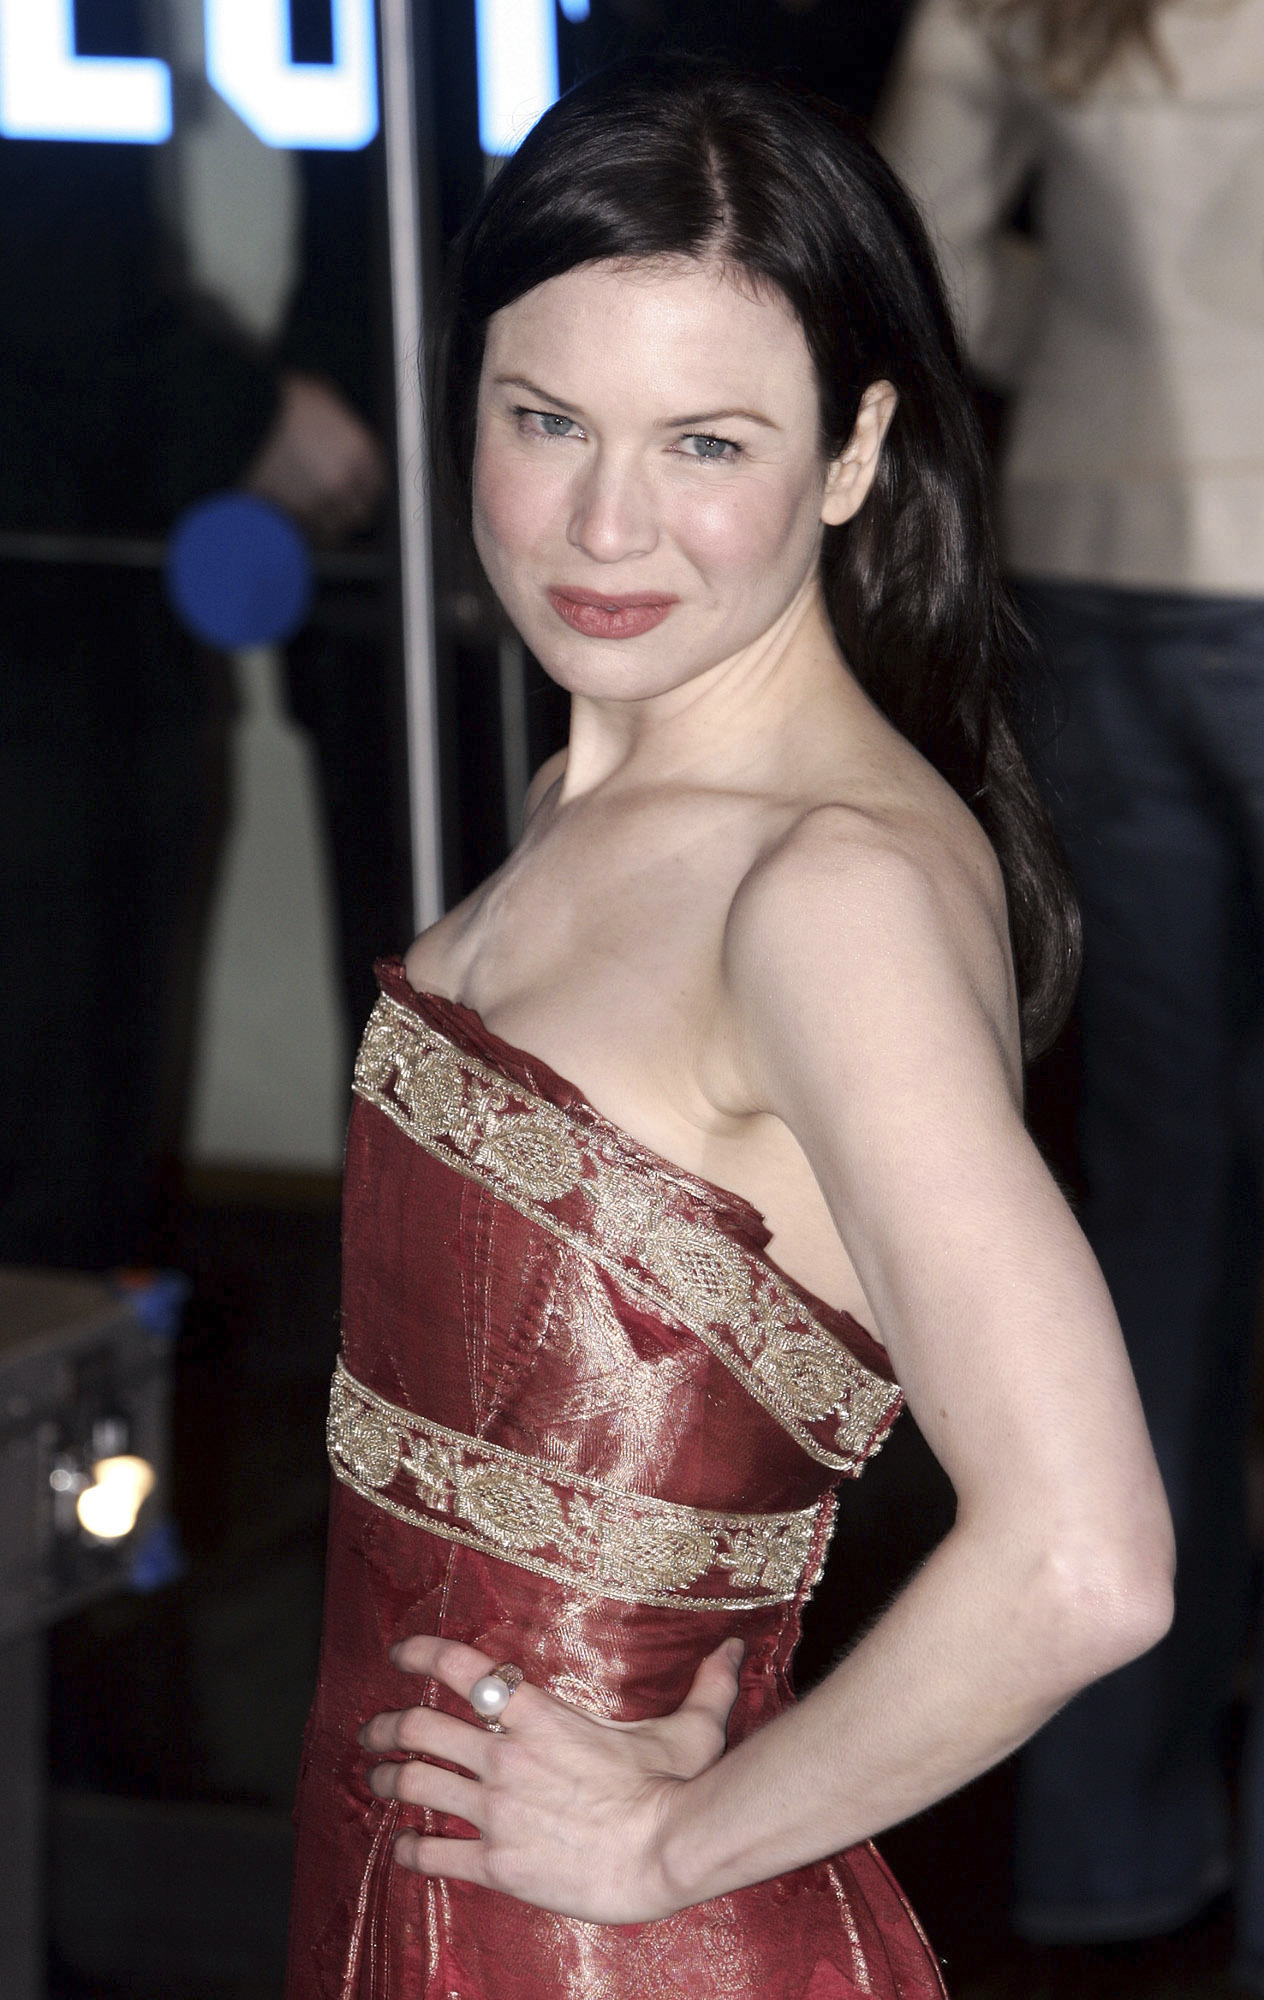 "FILE - In this Nov. 9, 2004 file photo, actress Rene Zellweger wears a Marchesa dress at the premiere of her film ""Bridget Jones: The Edge of Reason."" Marchesa co-founder Georgina Chapman took what some believed was her only brand-saving leap Tuesday, Oct. 10, 2017, as sex abuse allegations against her husband Harvey Weinstein mounted. Breaking her six-day silence, she told People she was leaving the film mogul she married in 2007. The divorce revelation came as some on social media called for a Marchesa boycott. (AP Photo/Adam Butler, File)"